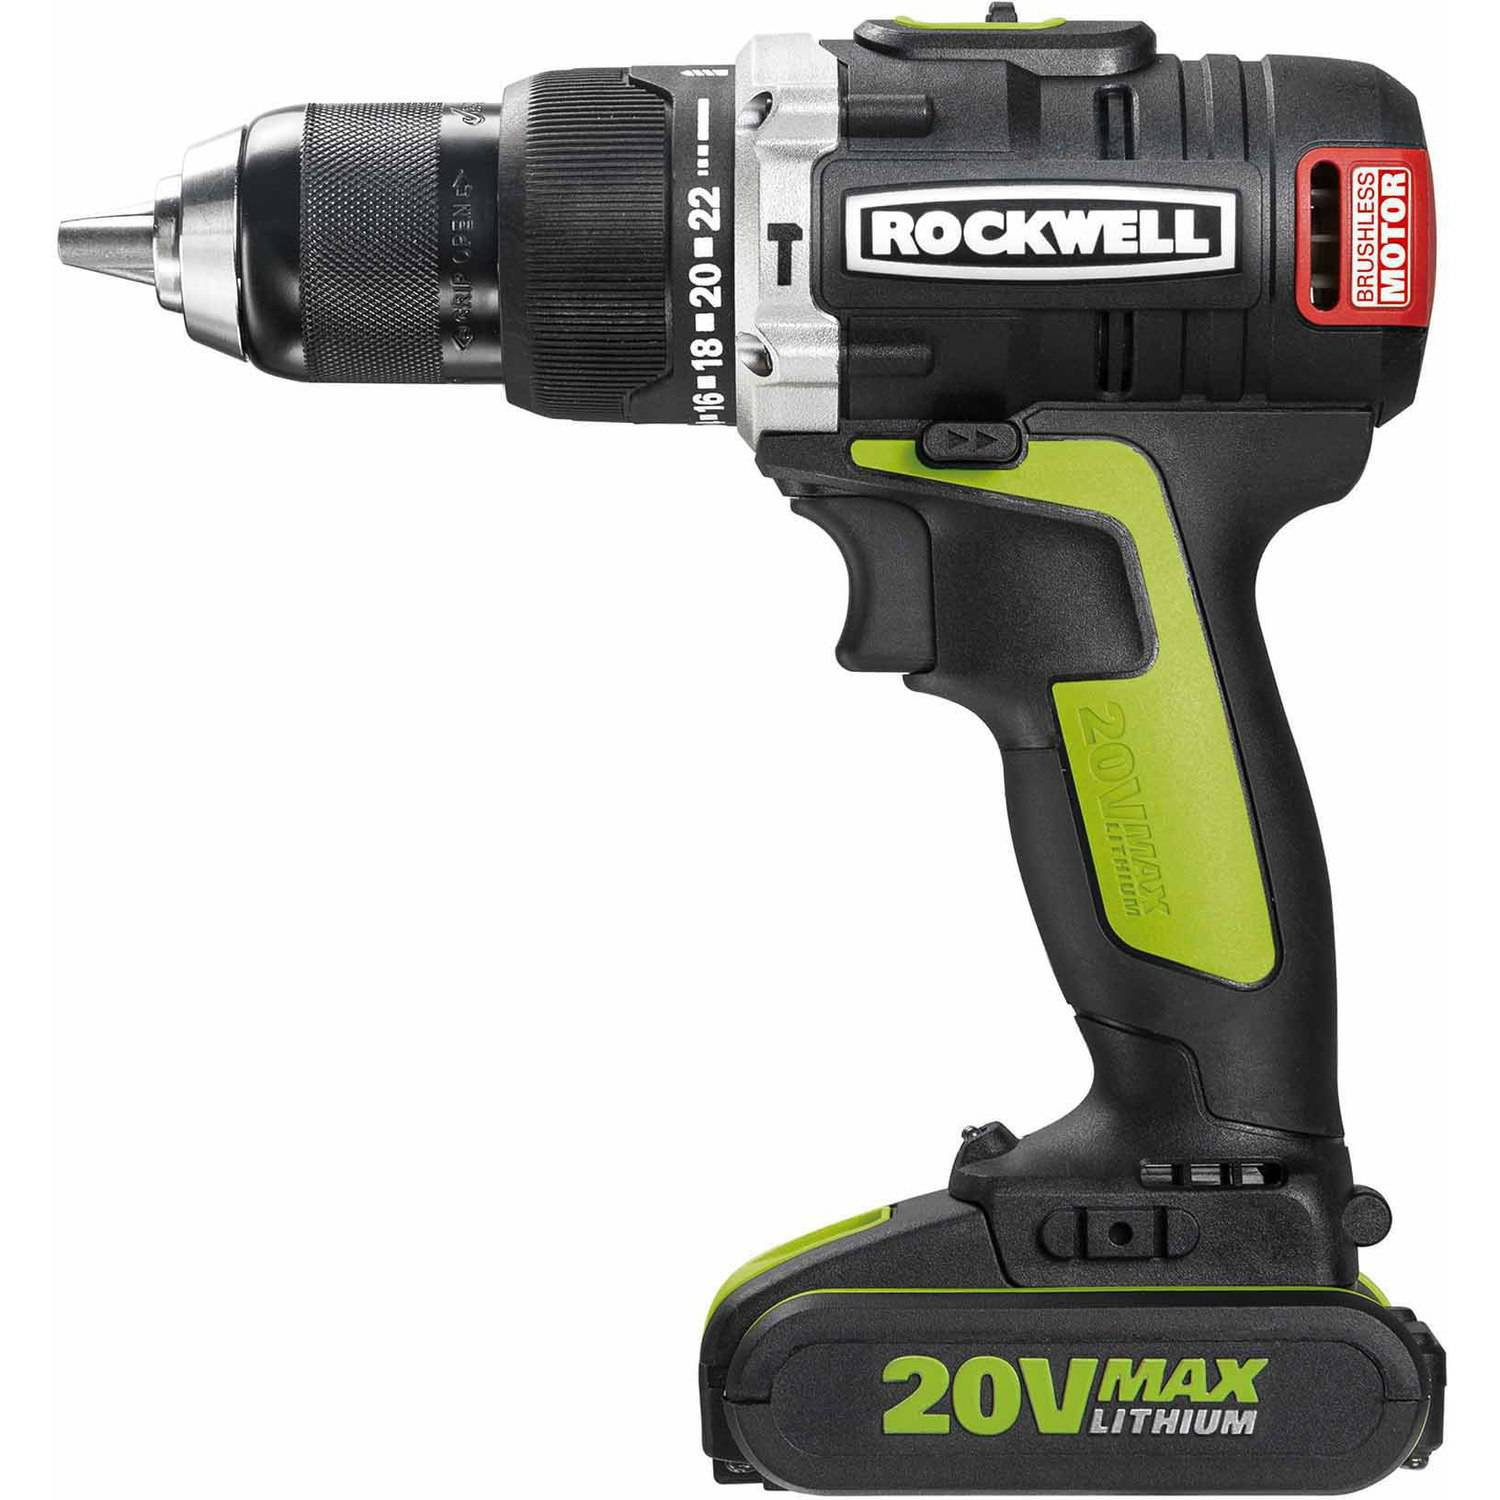 Rockwell 20V Li-ion Brushless Hammer Drill with 2-2.0Ah Batteries